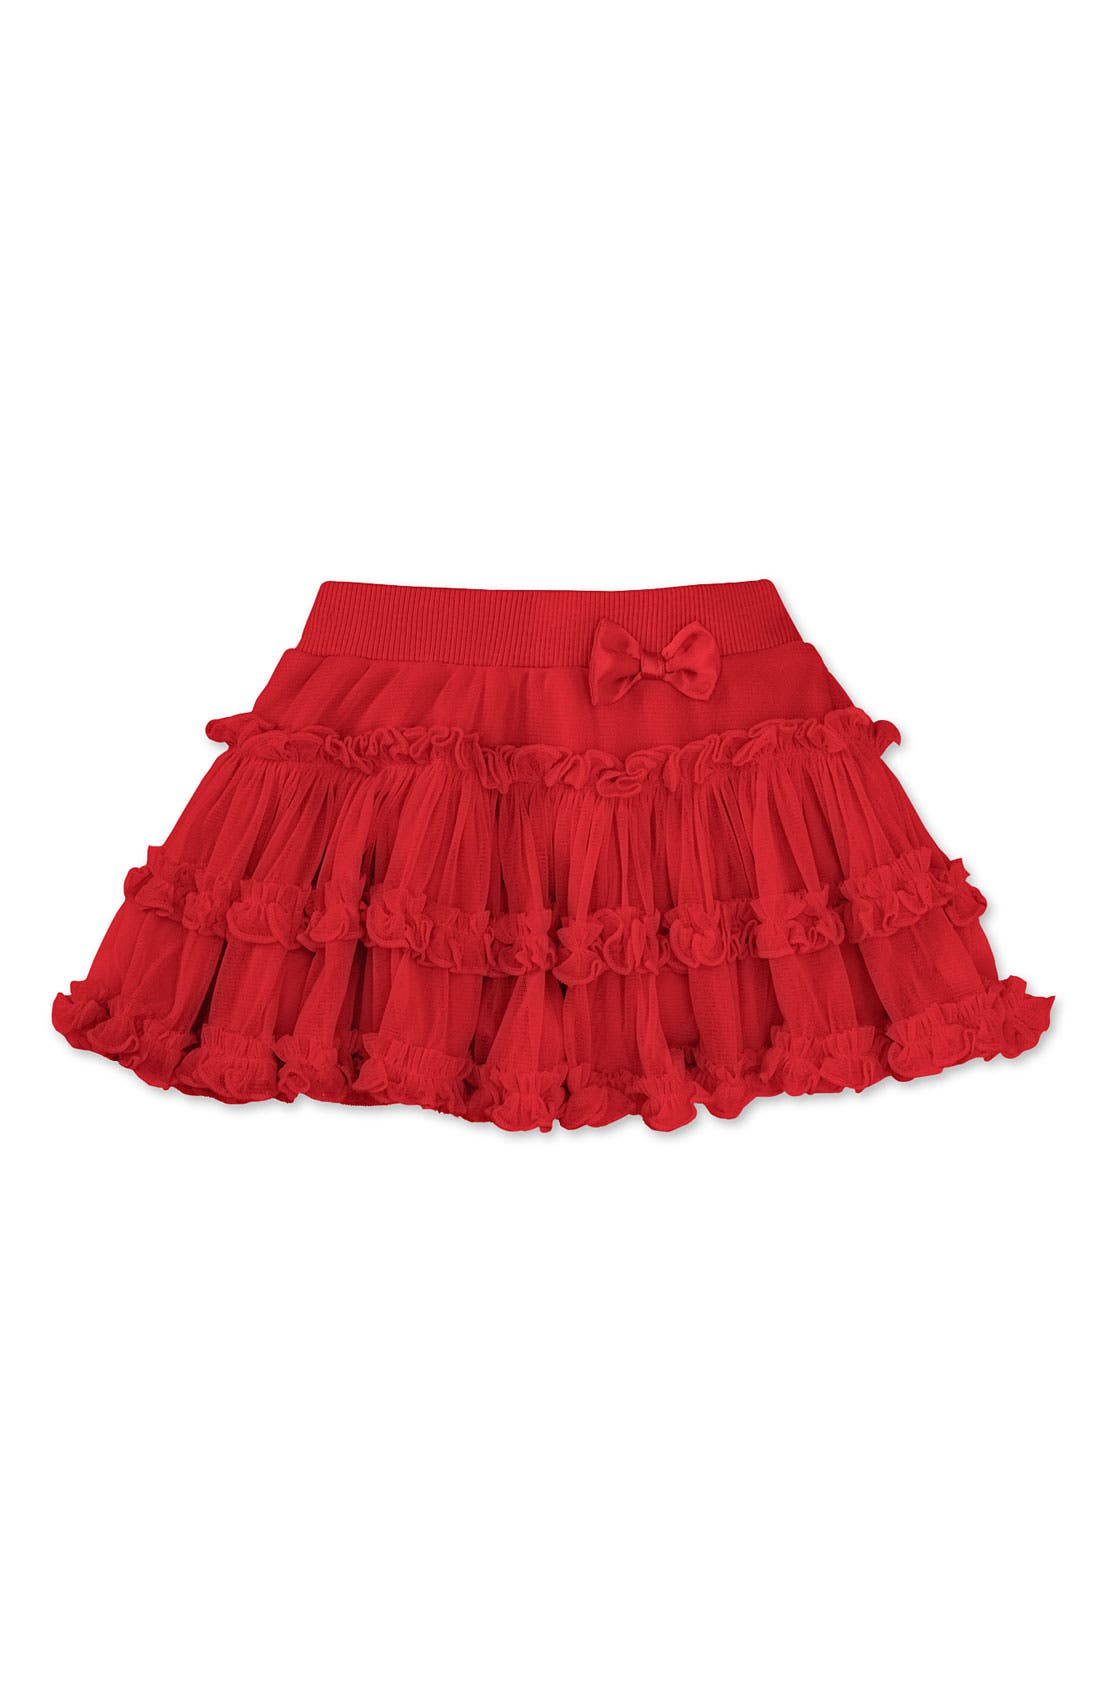 Alternate Image 1 Selected - Sweet Ivy Tutu Skirt (Infant)